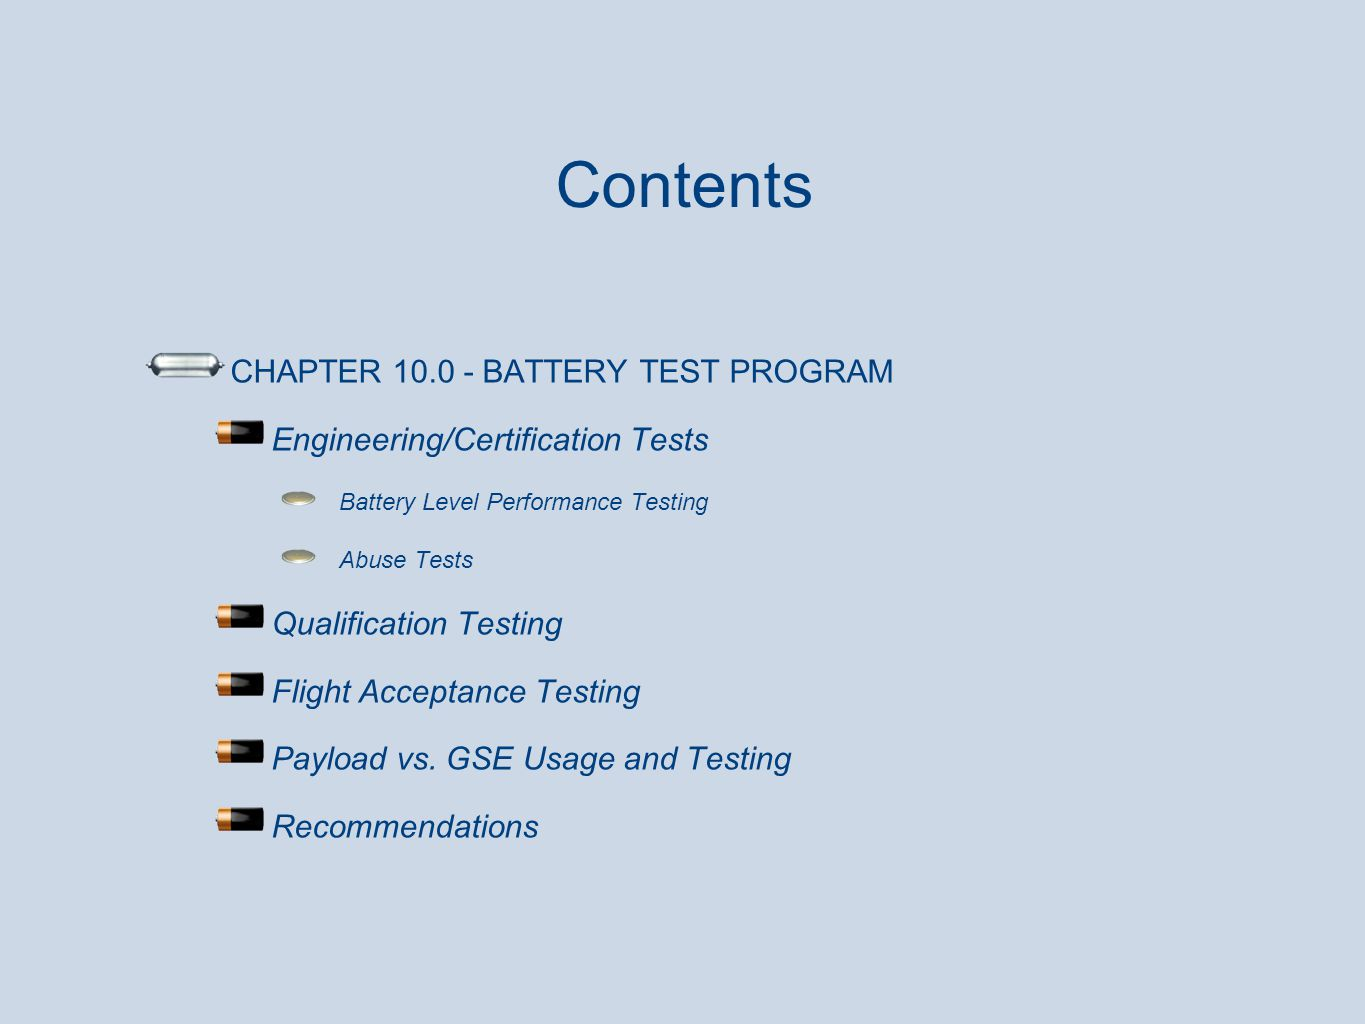 Contents CHAPTER 10.0 - BATTERY TEST PROGRAM Engineering/Certification Tests Battery Level Performance Testing Abuse Tests Qualification Testing Fligh